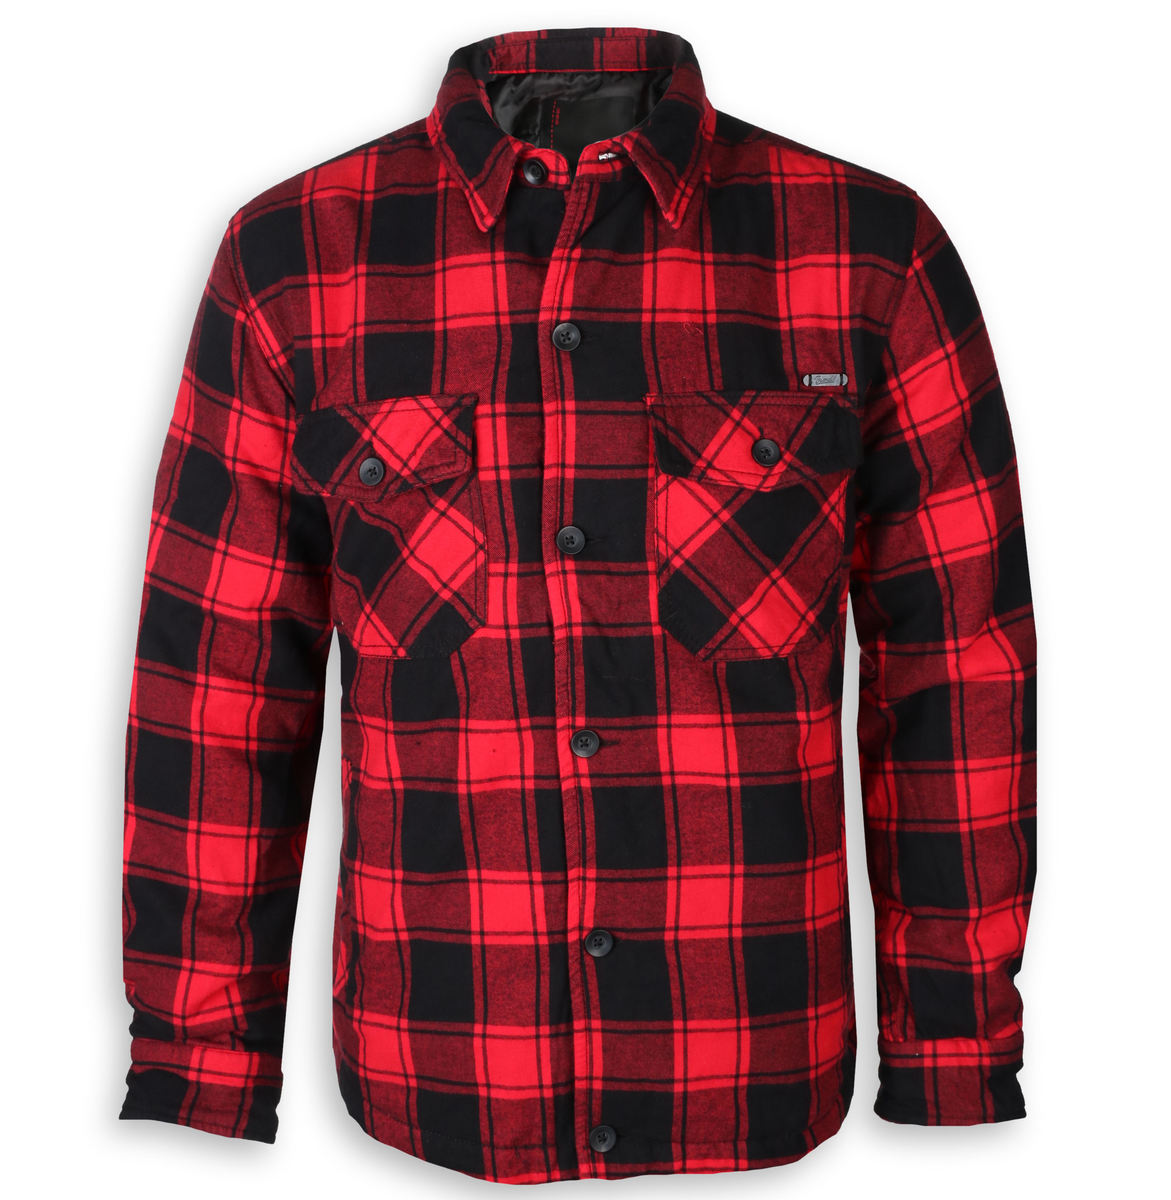 bunda zimní - Lumberjacket checked - BRANDIT - 9478-redblack checkered